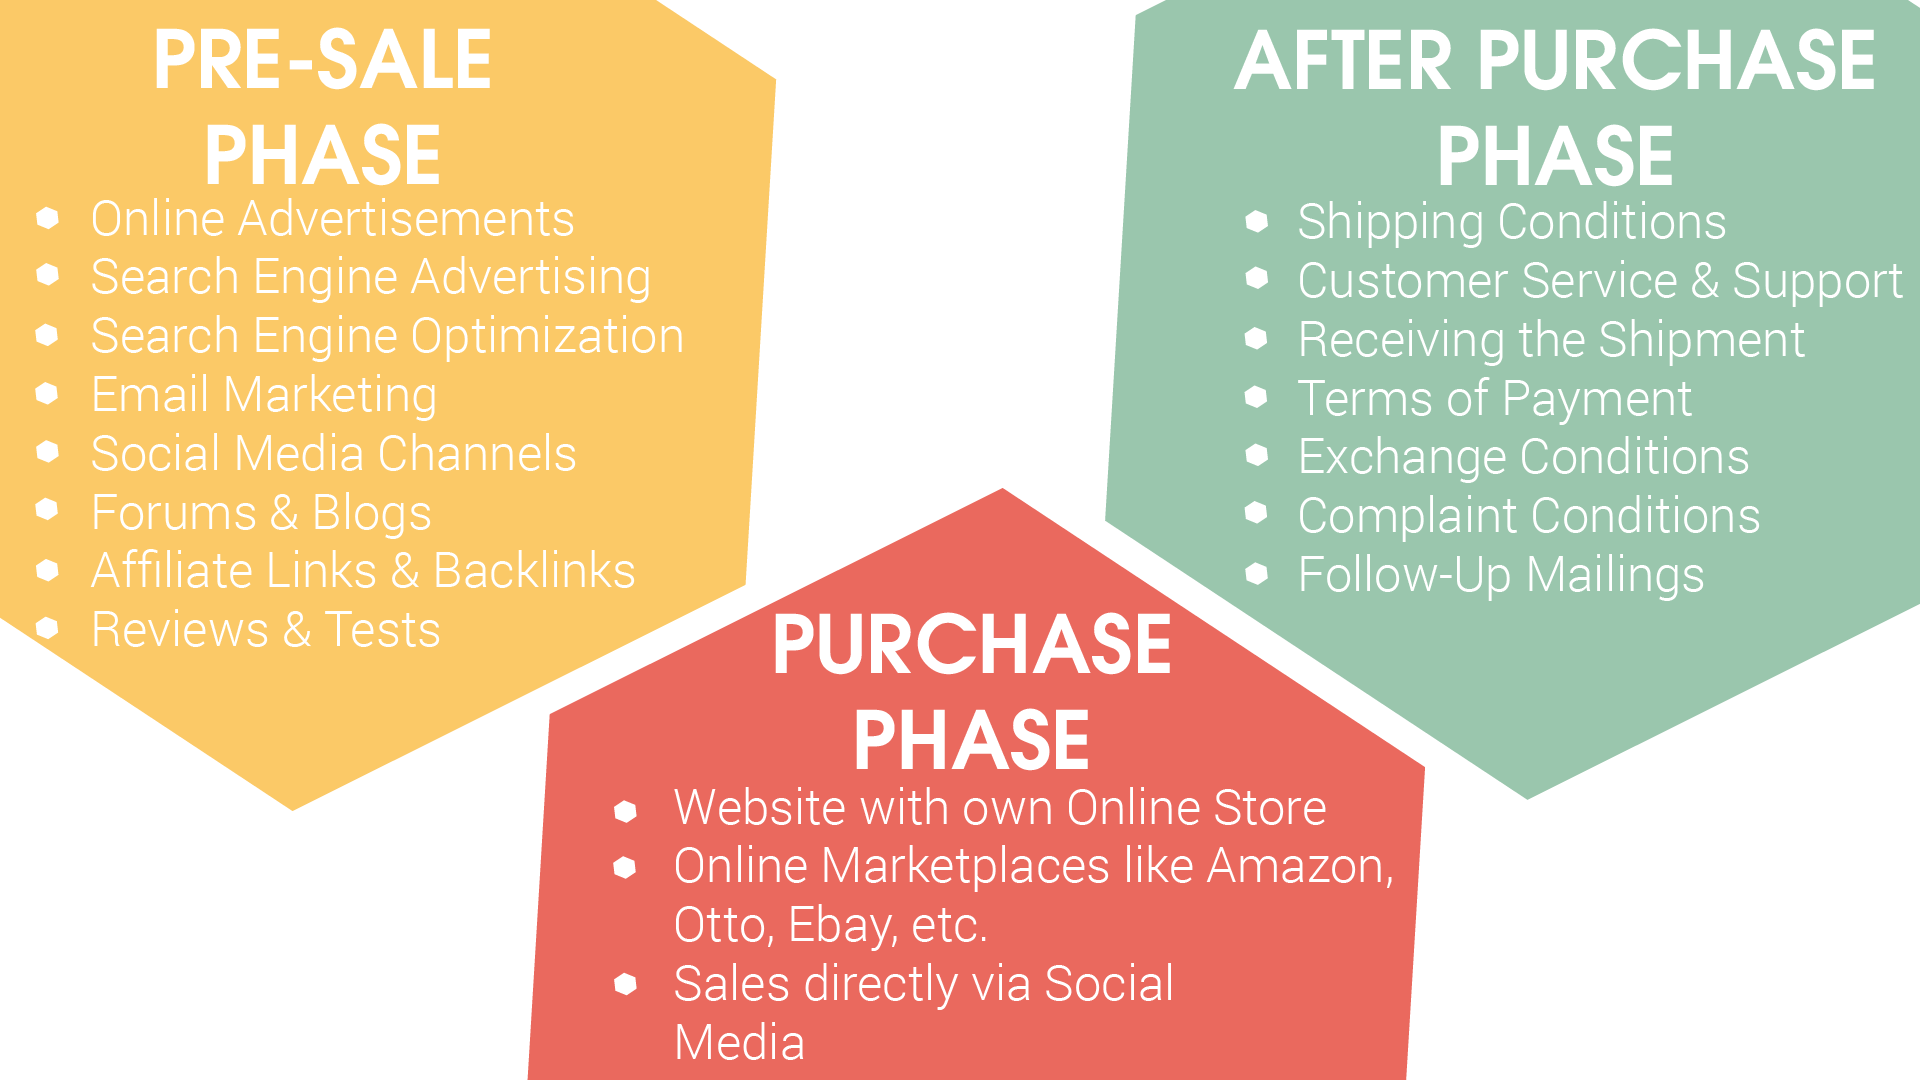 Possible touchpoints on the internet: Pre-purchase phase:, e.g.: Online ads, search engine advertising, search engine optimization, email marketing, social media channels forums & blogs, affiliate links & backlinks, reviews & tests Buying phase, e.g.: website with own online store, online marketplaces like Amazon & Co., sales directly via social media Post-purchase phase, e.g.: Shipping, payment, exchange and complaint terms, customer service & support, receiving the shipment, follow up mailings.